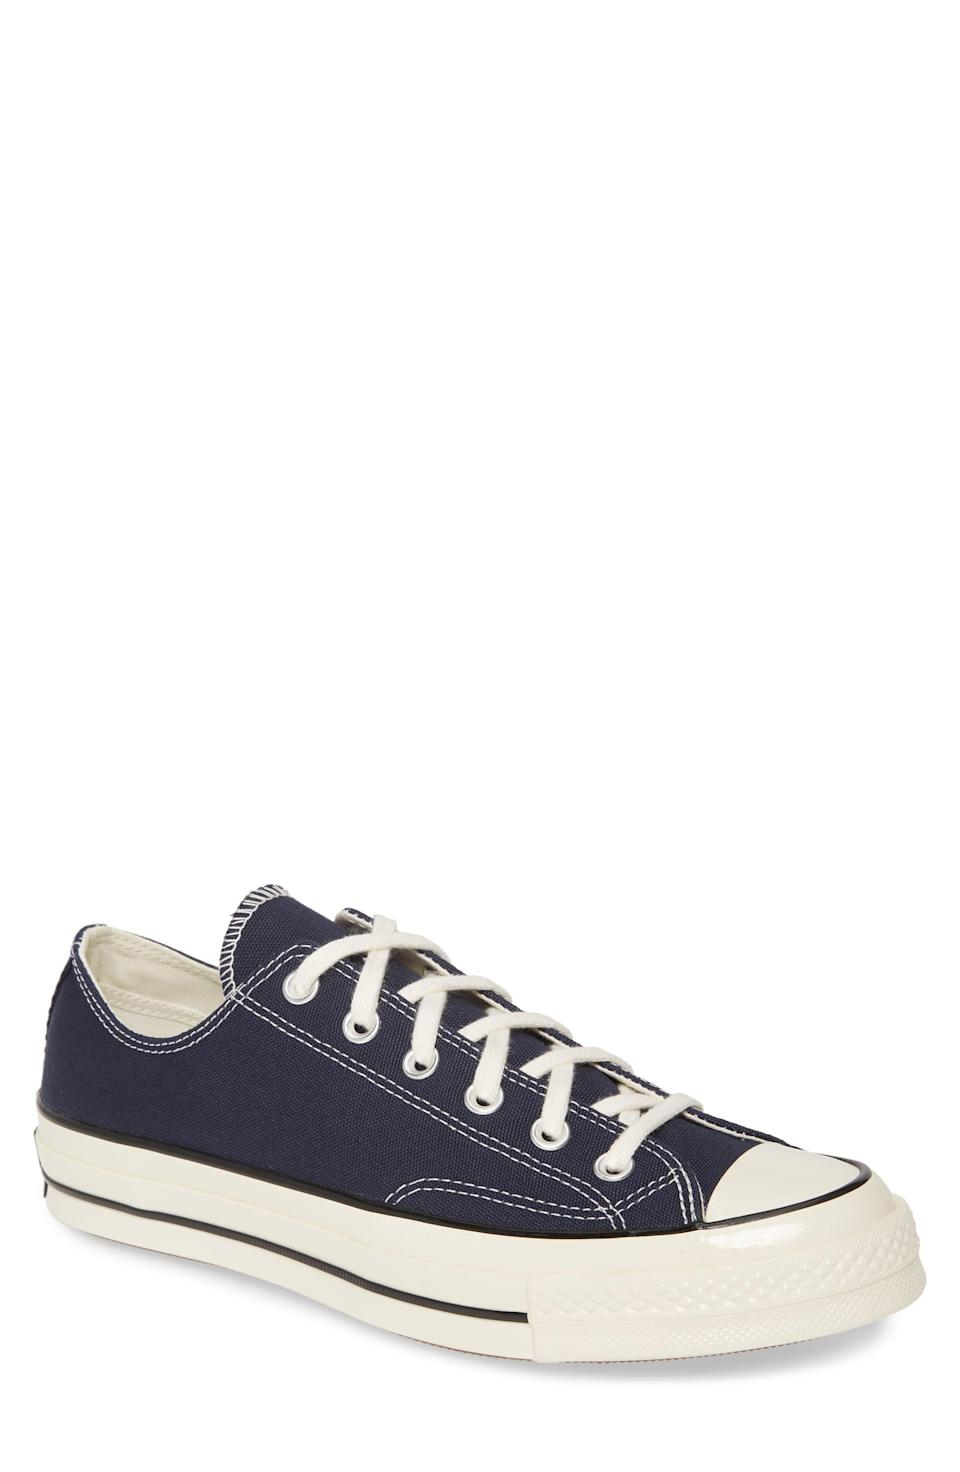 """<p><strong>CONVERSE</strong></p><p>nordstrom.com</p><p><strong>$80.00</strong></p><p><a href=""""https://go.redirectingat.com?id=74968X1596630&url=https%3A%2F%2Fshop.nordstrom.com%2Fs%2Fconverse-chuck-70-ox-sneaker-men%2F5050954&sref=https%3A%2F%2Fwww.menshealth.com%2Fstyle%2Fg37081969%2Fnordstroms-anniversary-sale-best-sneakers%2F"""" rel=""""nofollow noopener"""" target=""""_blank"""" data-ylk=""""slk:BUY IT HERE"""" class=""""link rapid-noclick-resp"""">BUY IT HERE</a></p><p><del>$85</del><strong><br>$49.90</strong></p><p>Look, you may work out in high-quality trainers, but when you want a simple sneaker for your <em>other</em> casual moments, these will be the ones. They're like luxe versions of the brand's classic kicks.<strong><br></strong></p>"""